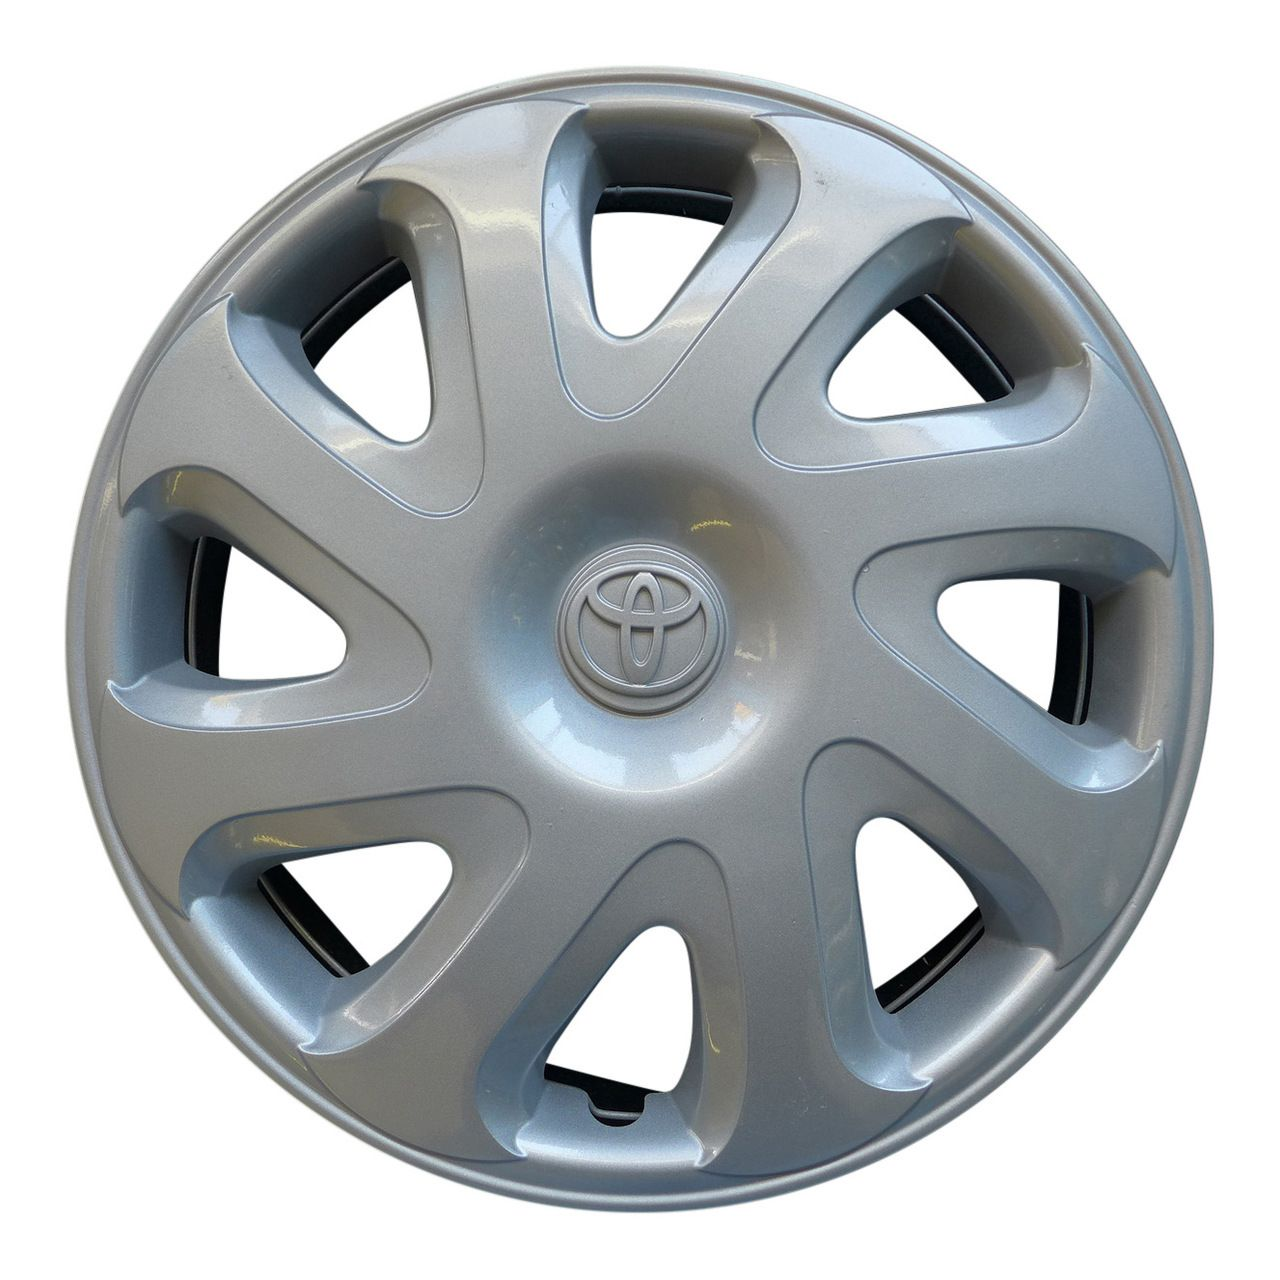 2000 2001 2002 toyota corolla hubcap wheel cover 14 61111